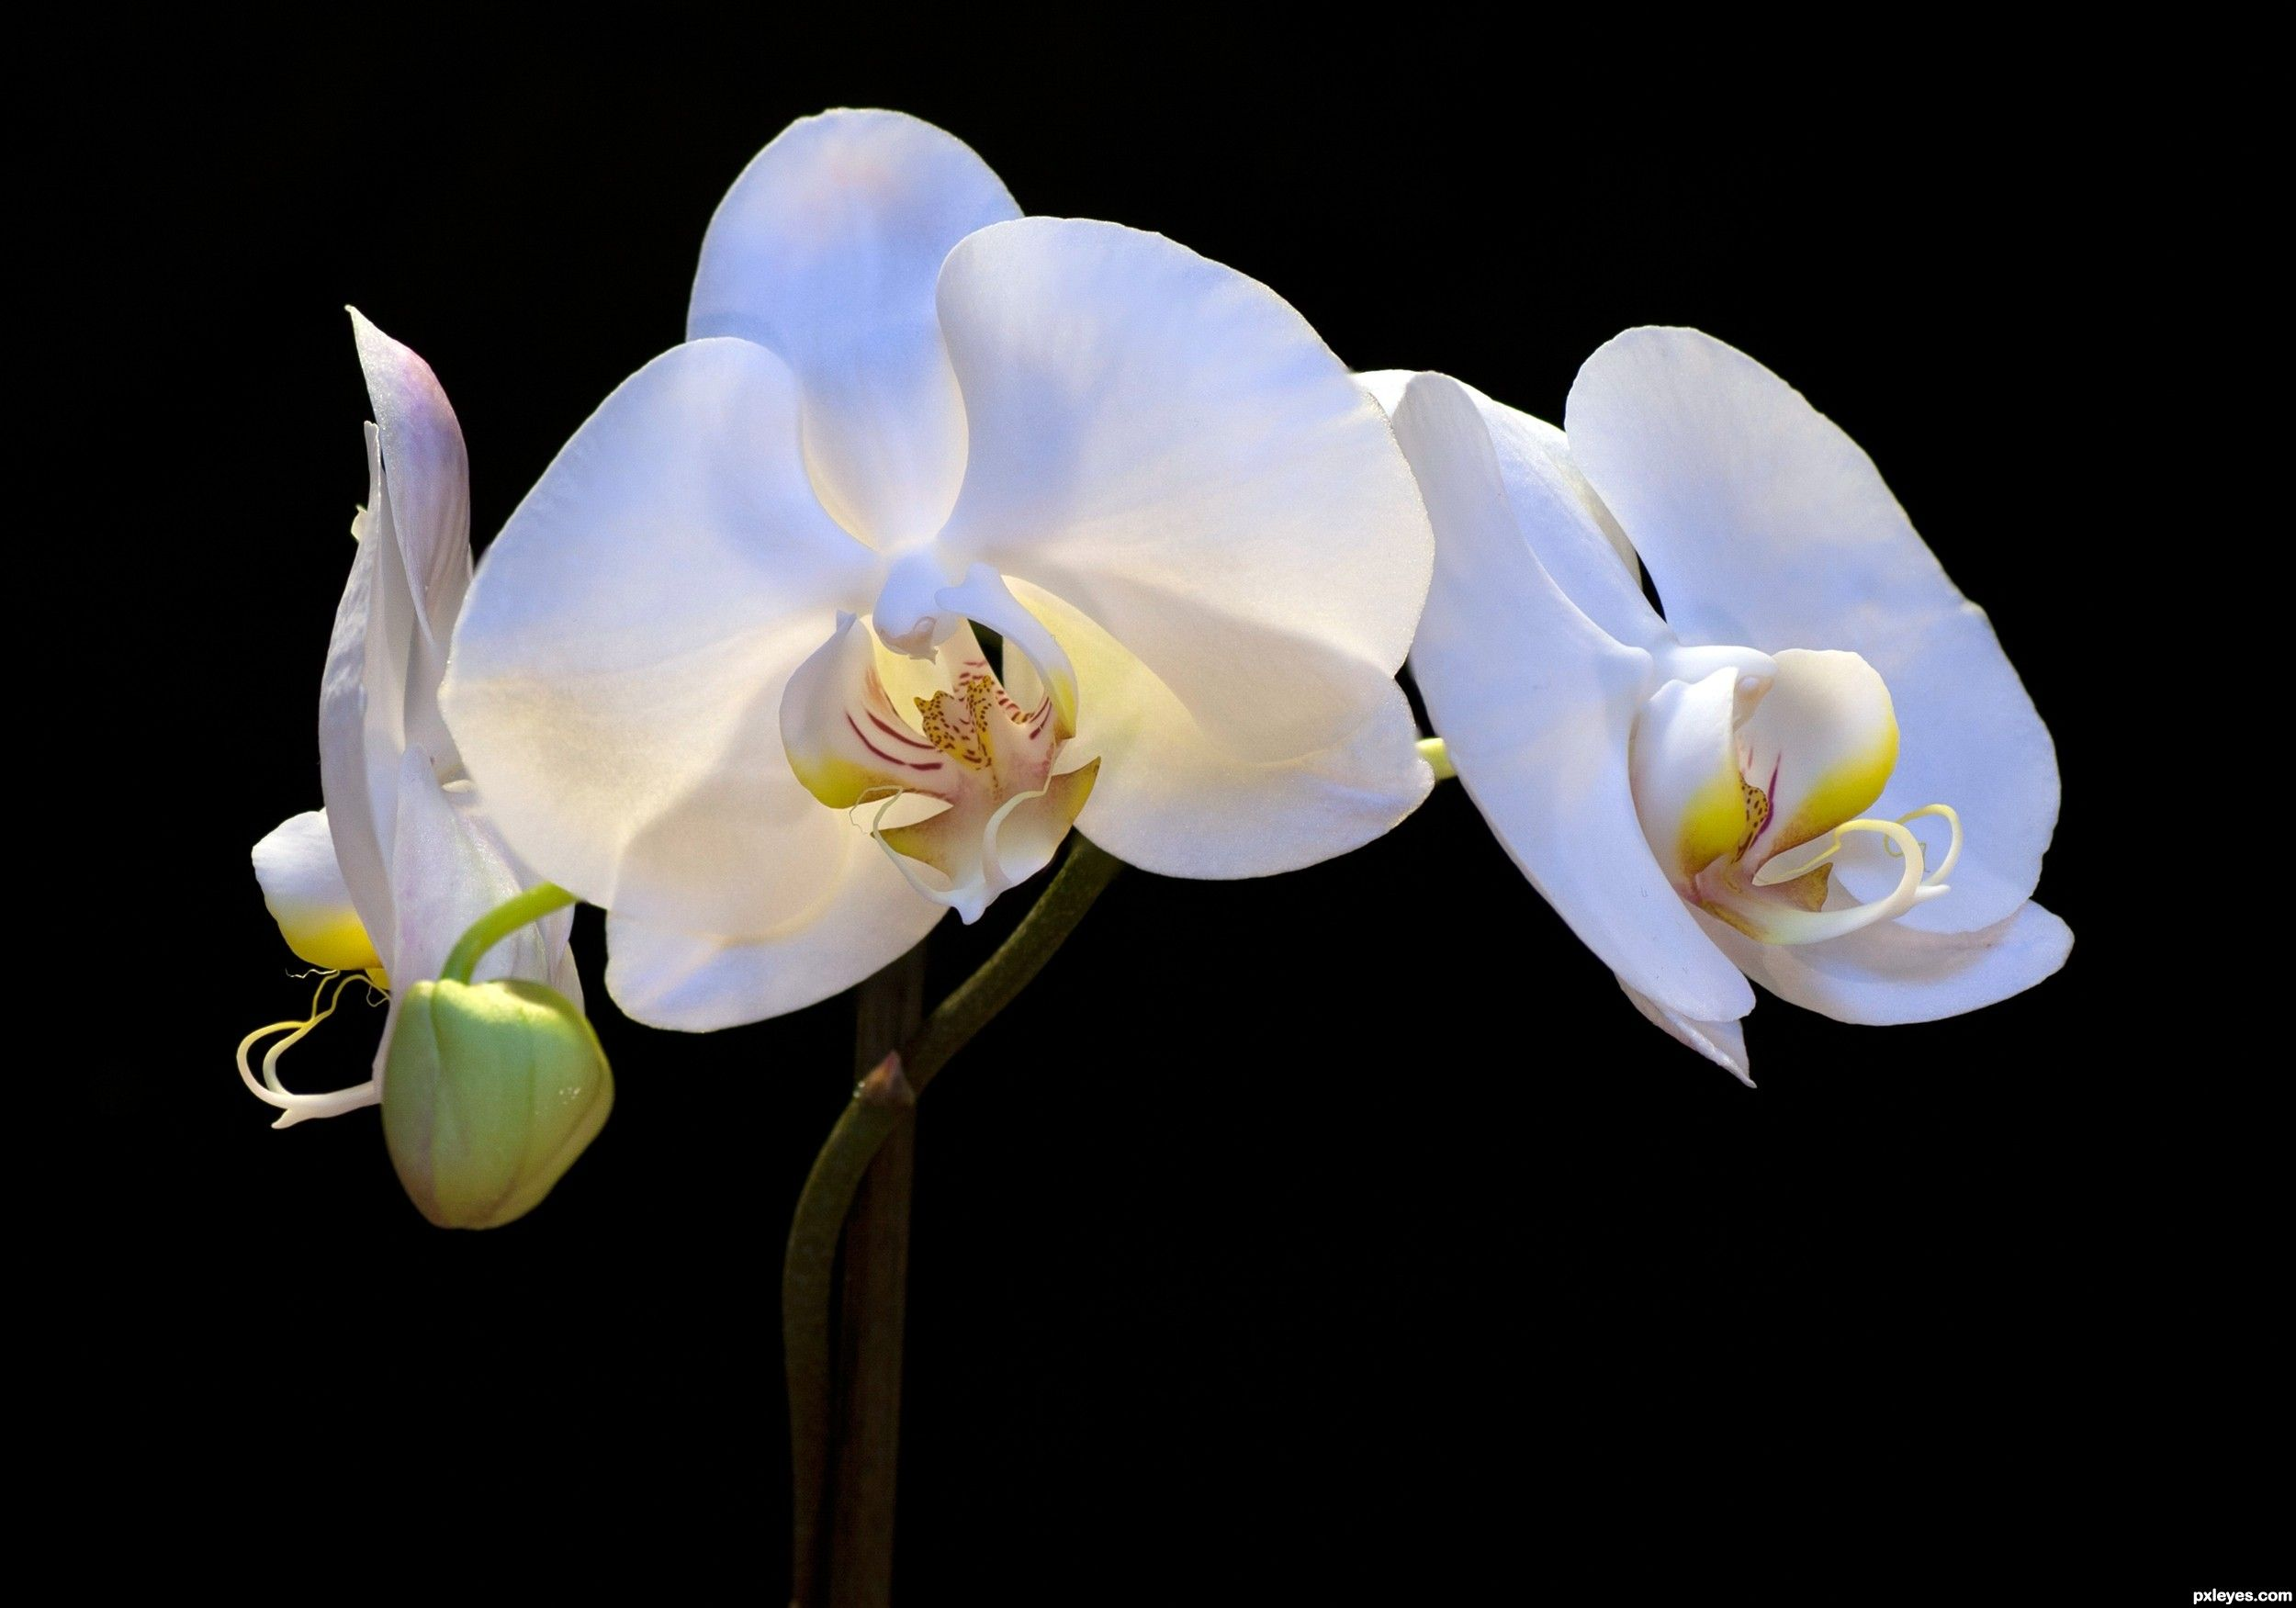 White Orchid Picture By Friiskiwi For Orchids Photography Contest Orchid Photography White Orchids Orchid Wallpaper